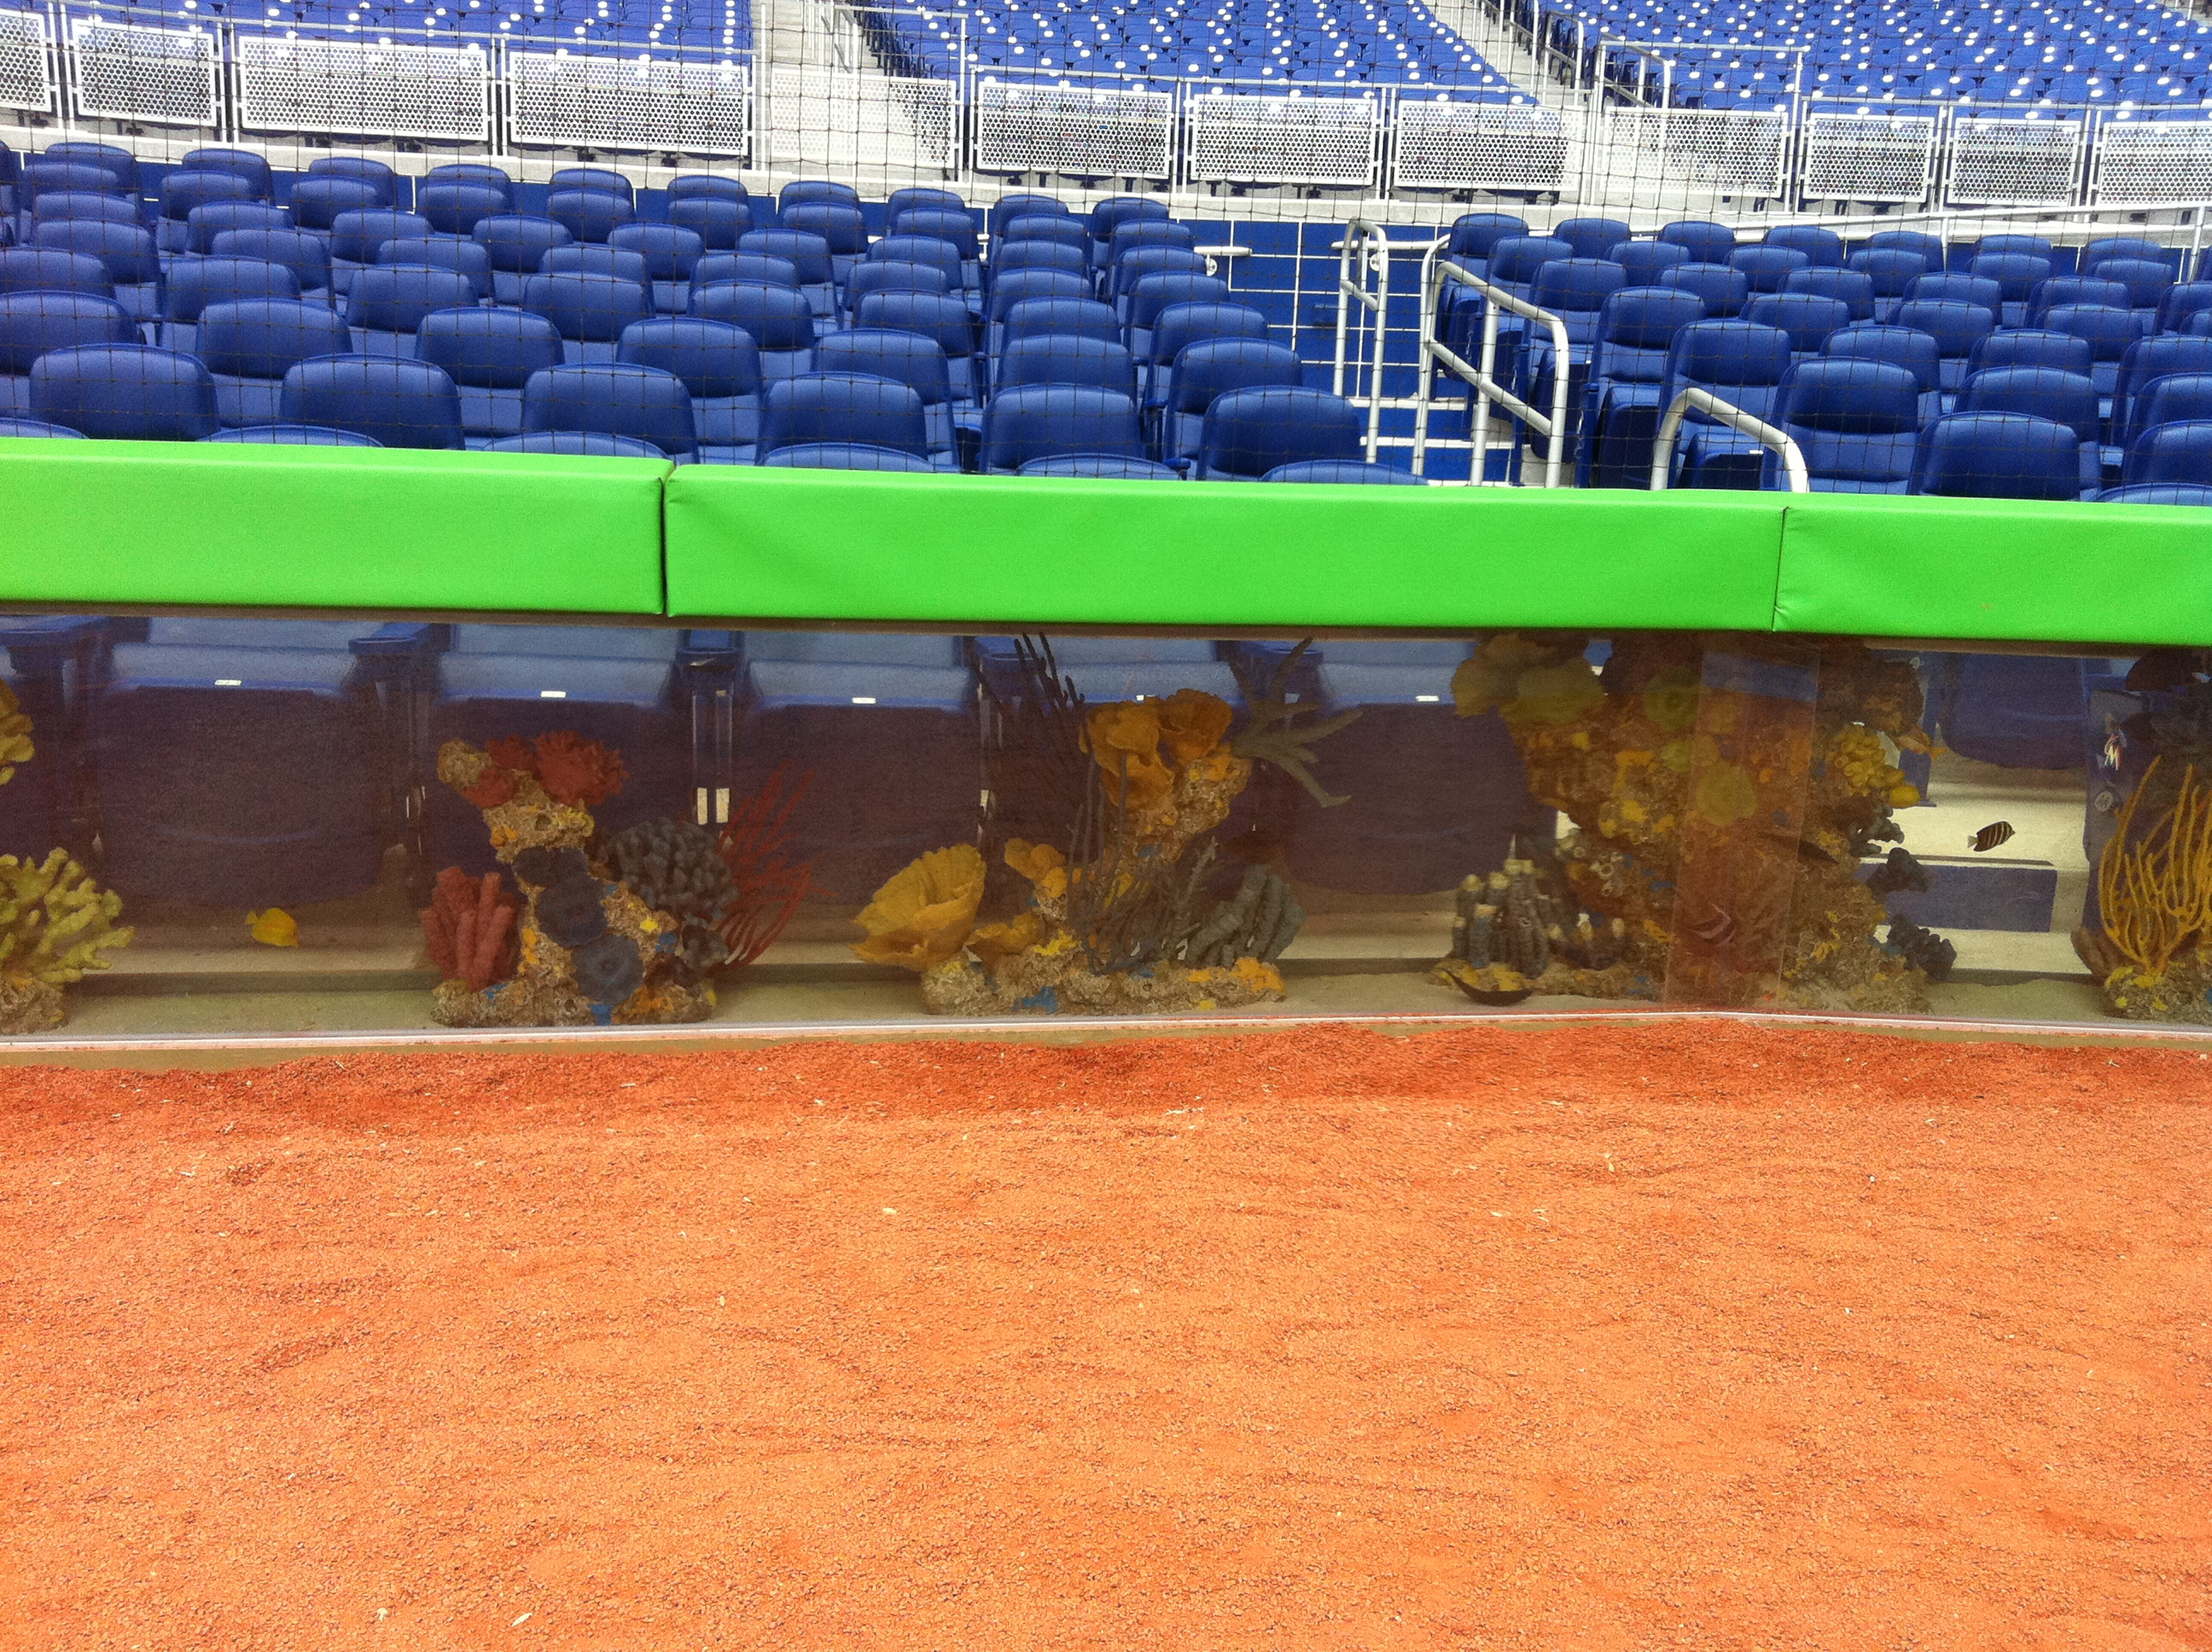 The fish tank behind home plate.